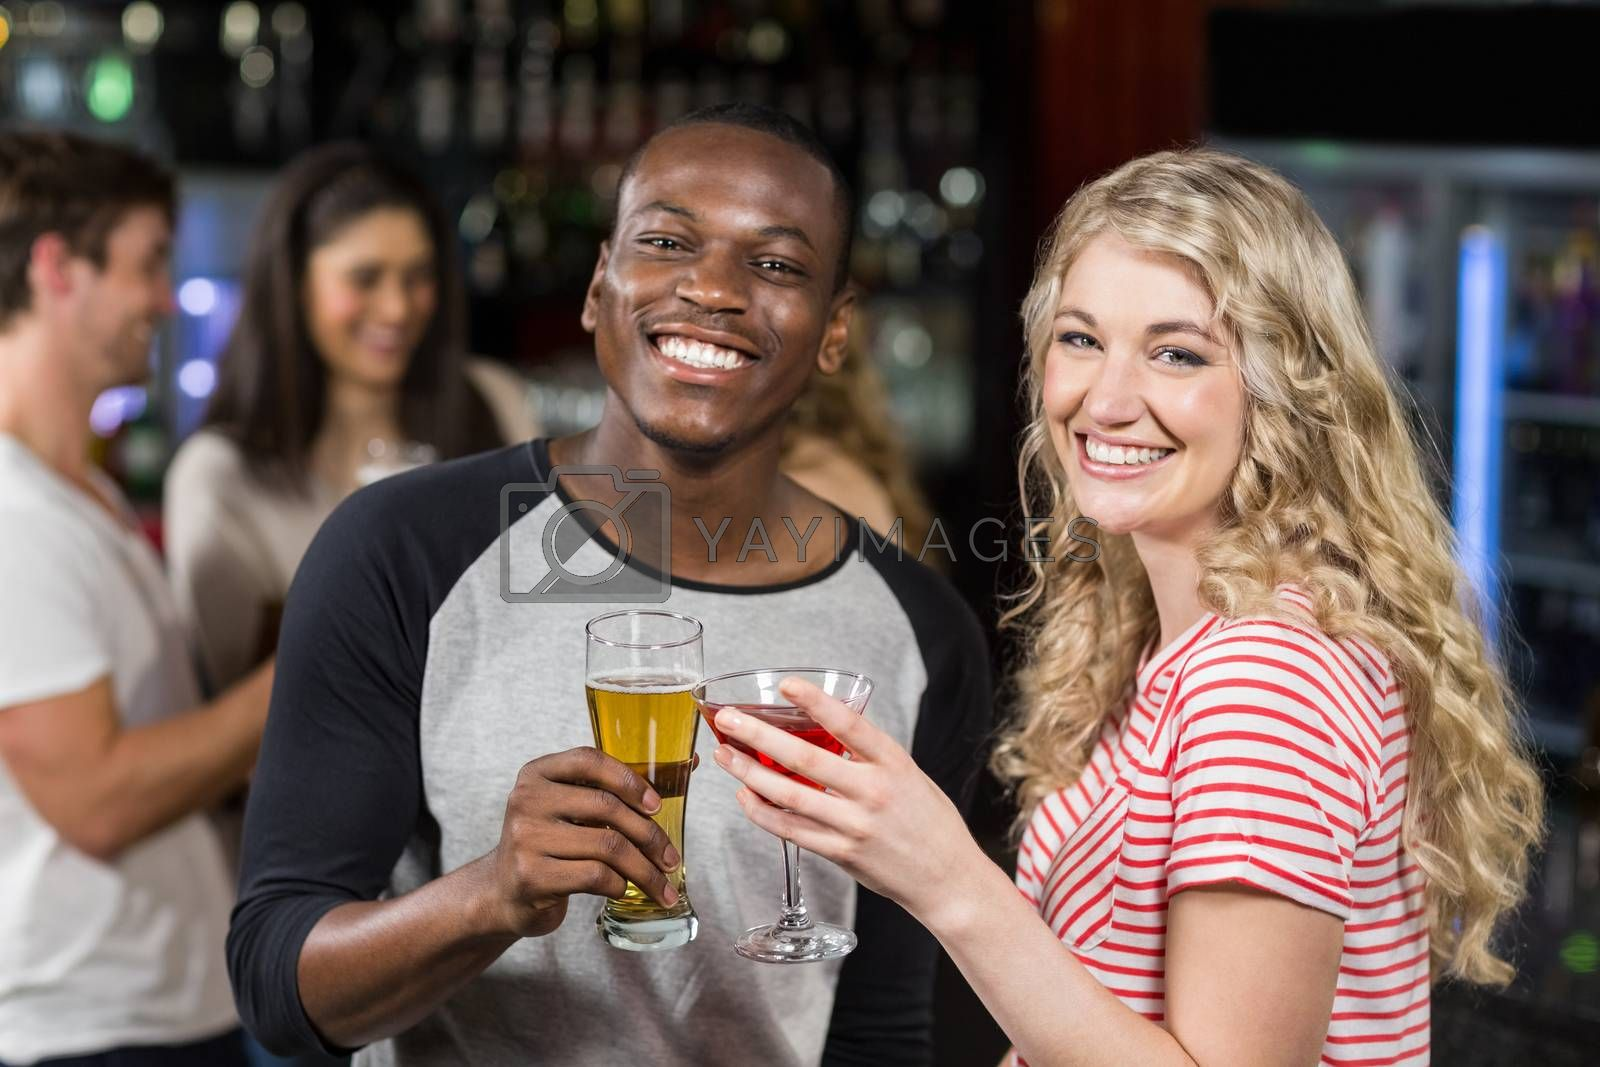 Friends toasting with cocktail and beer in a pub